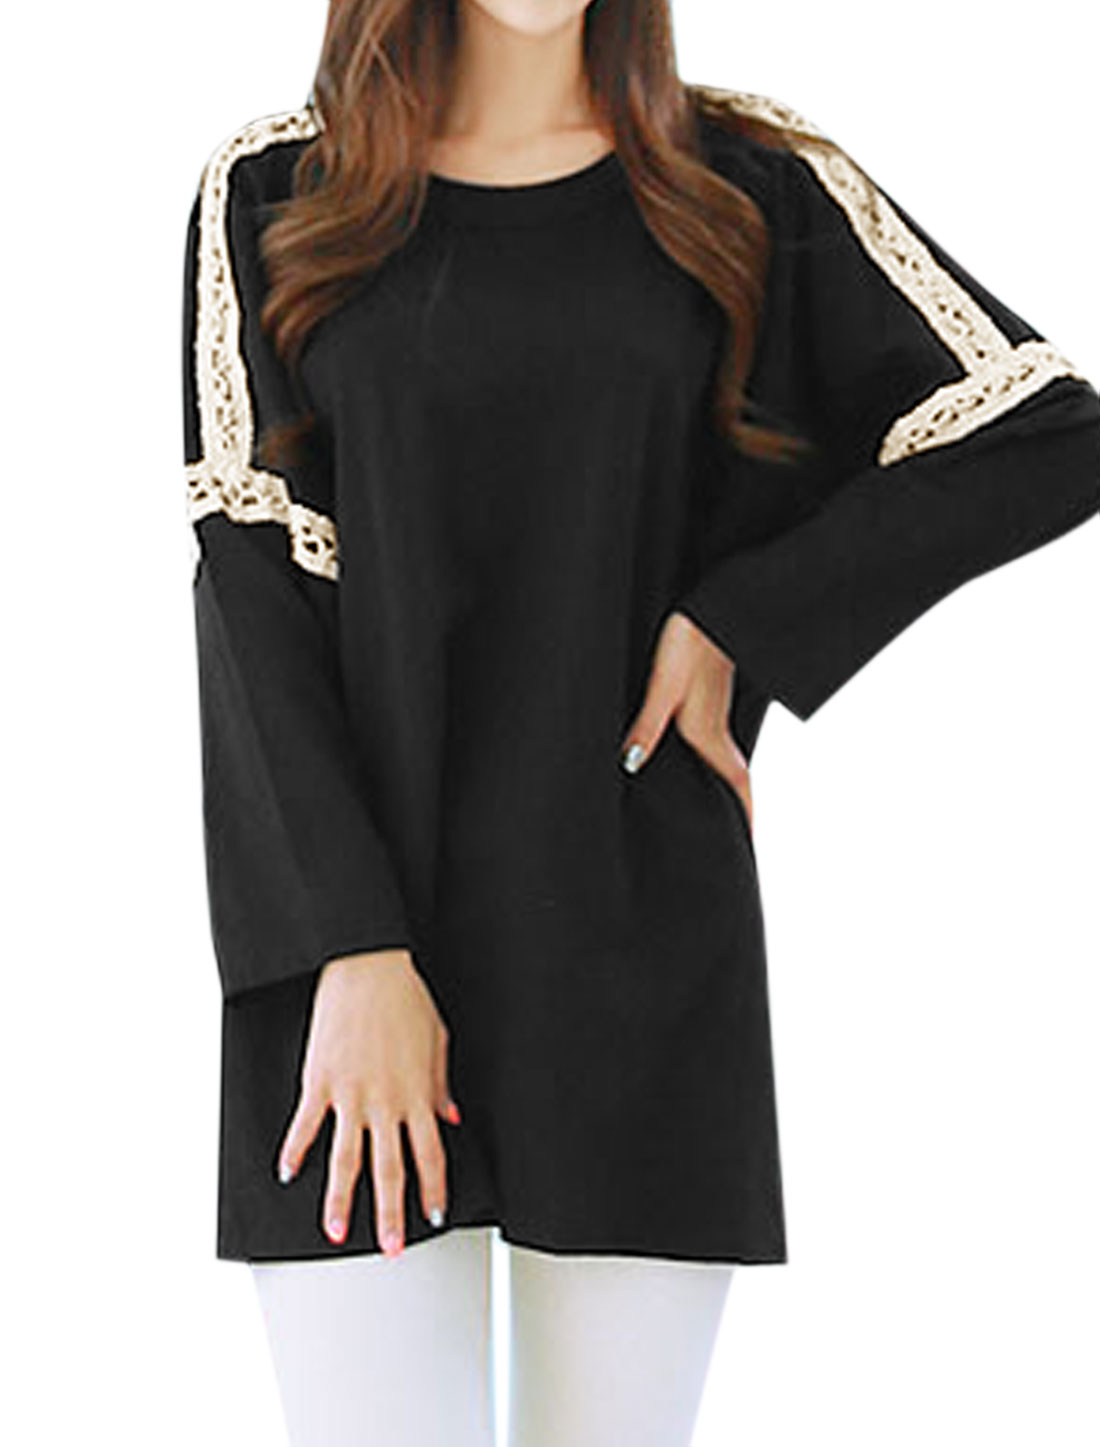 Women Batwing Sleeves Hollow Out Paneled Loose Tunic Shirt Black XS